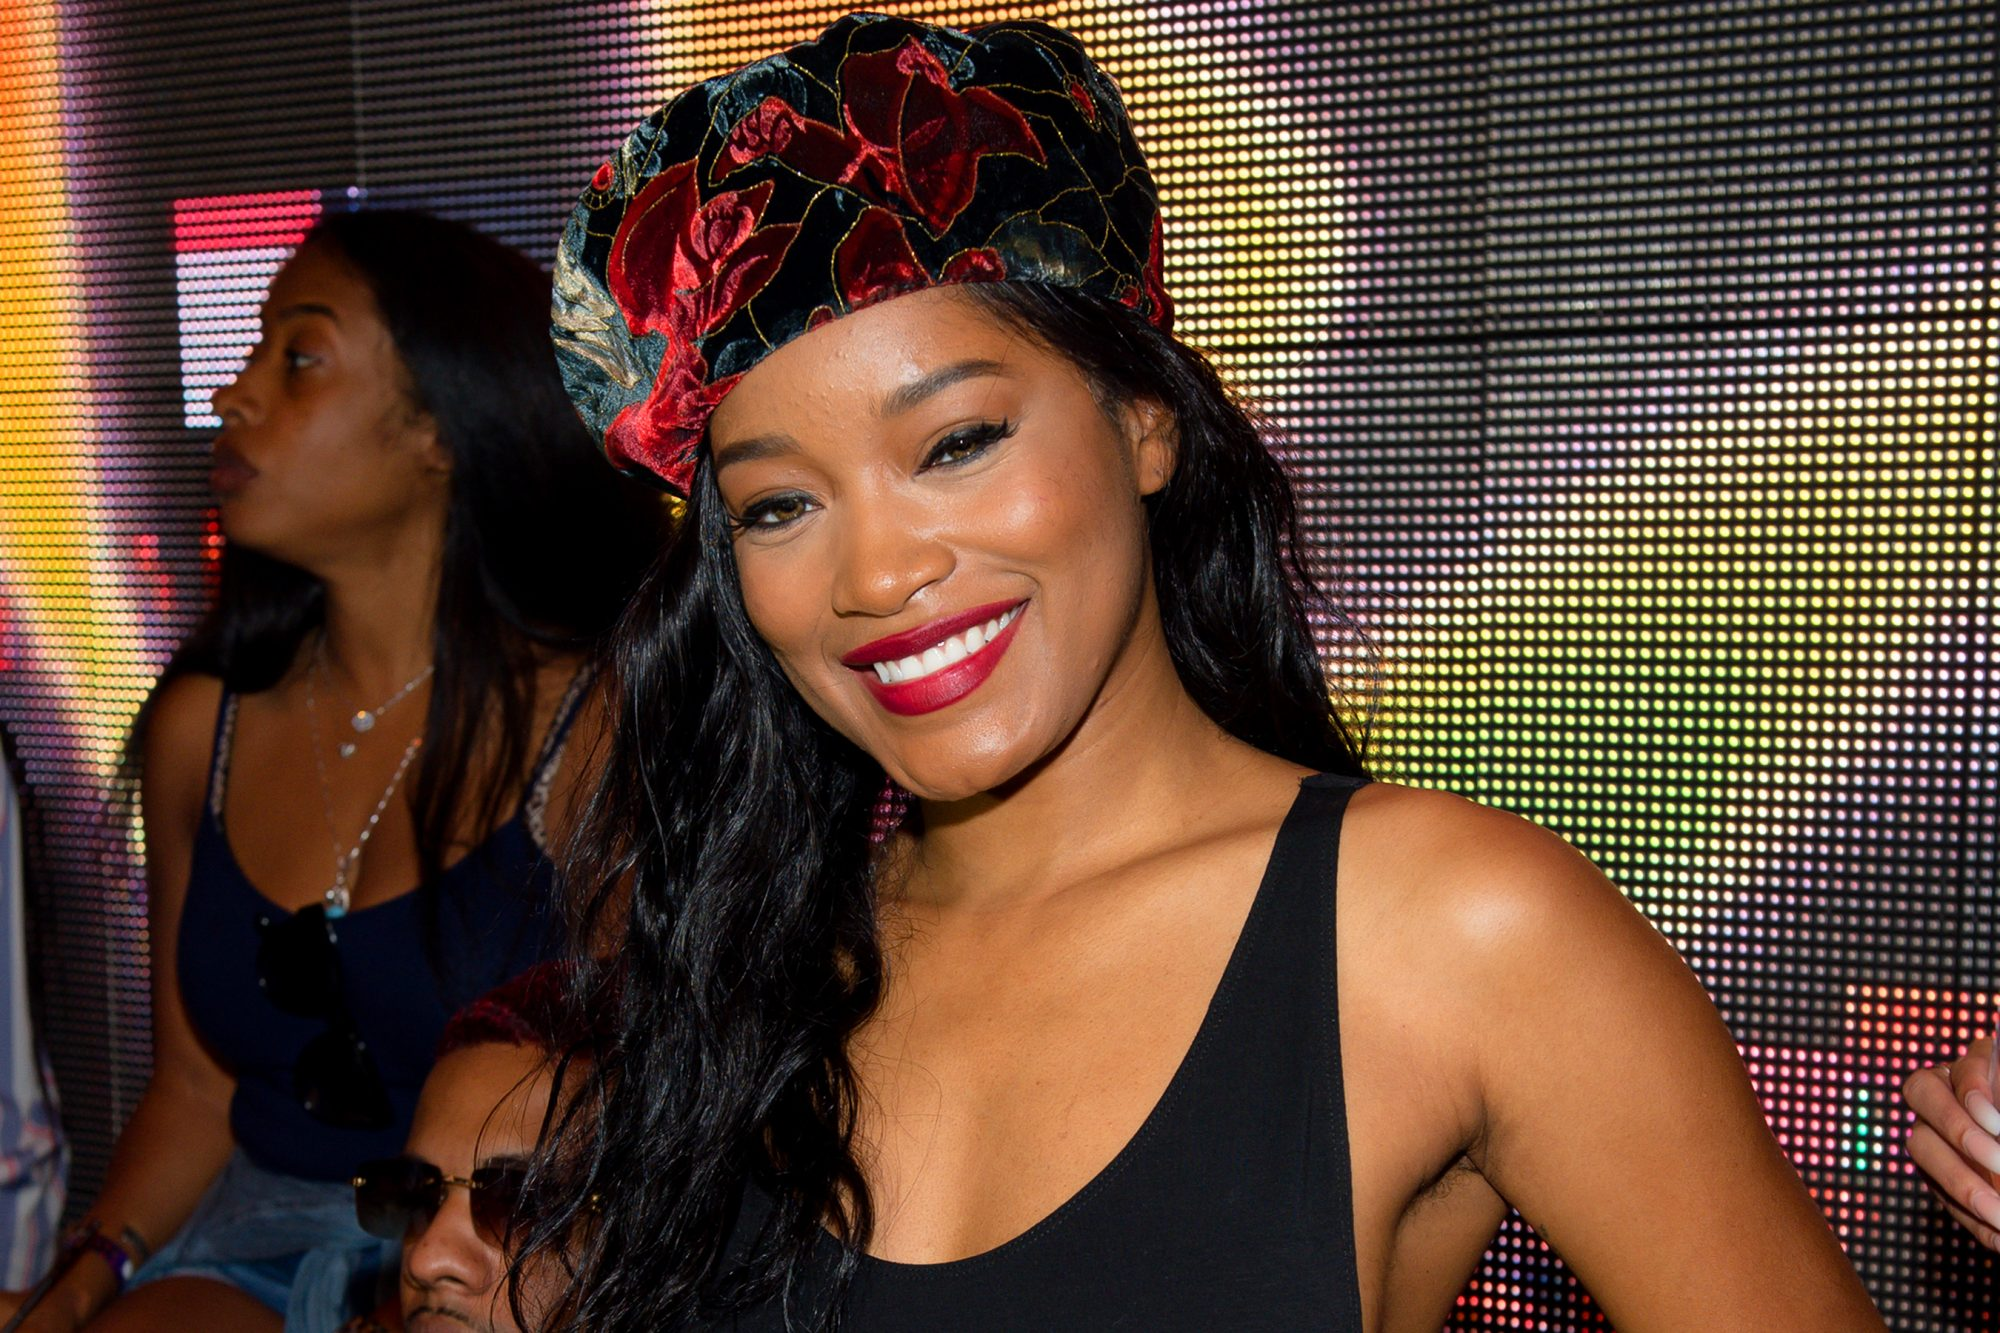 Wet Her Hosted By Keke Palmer